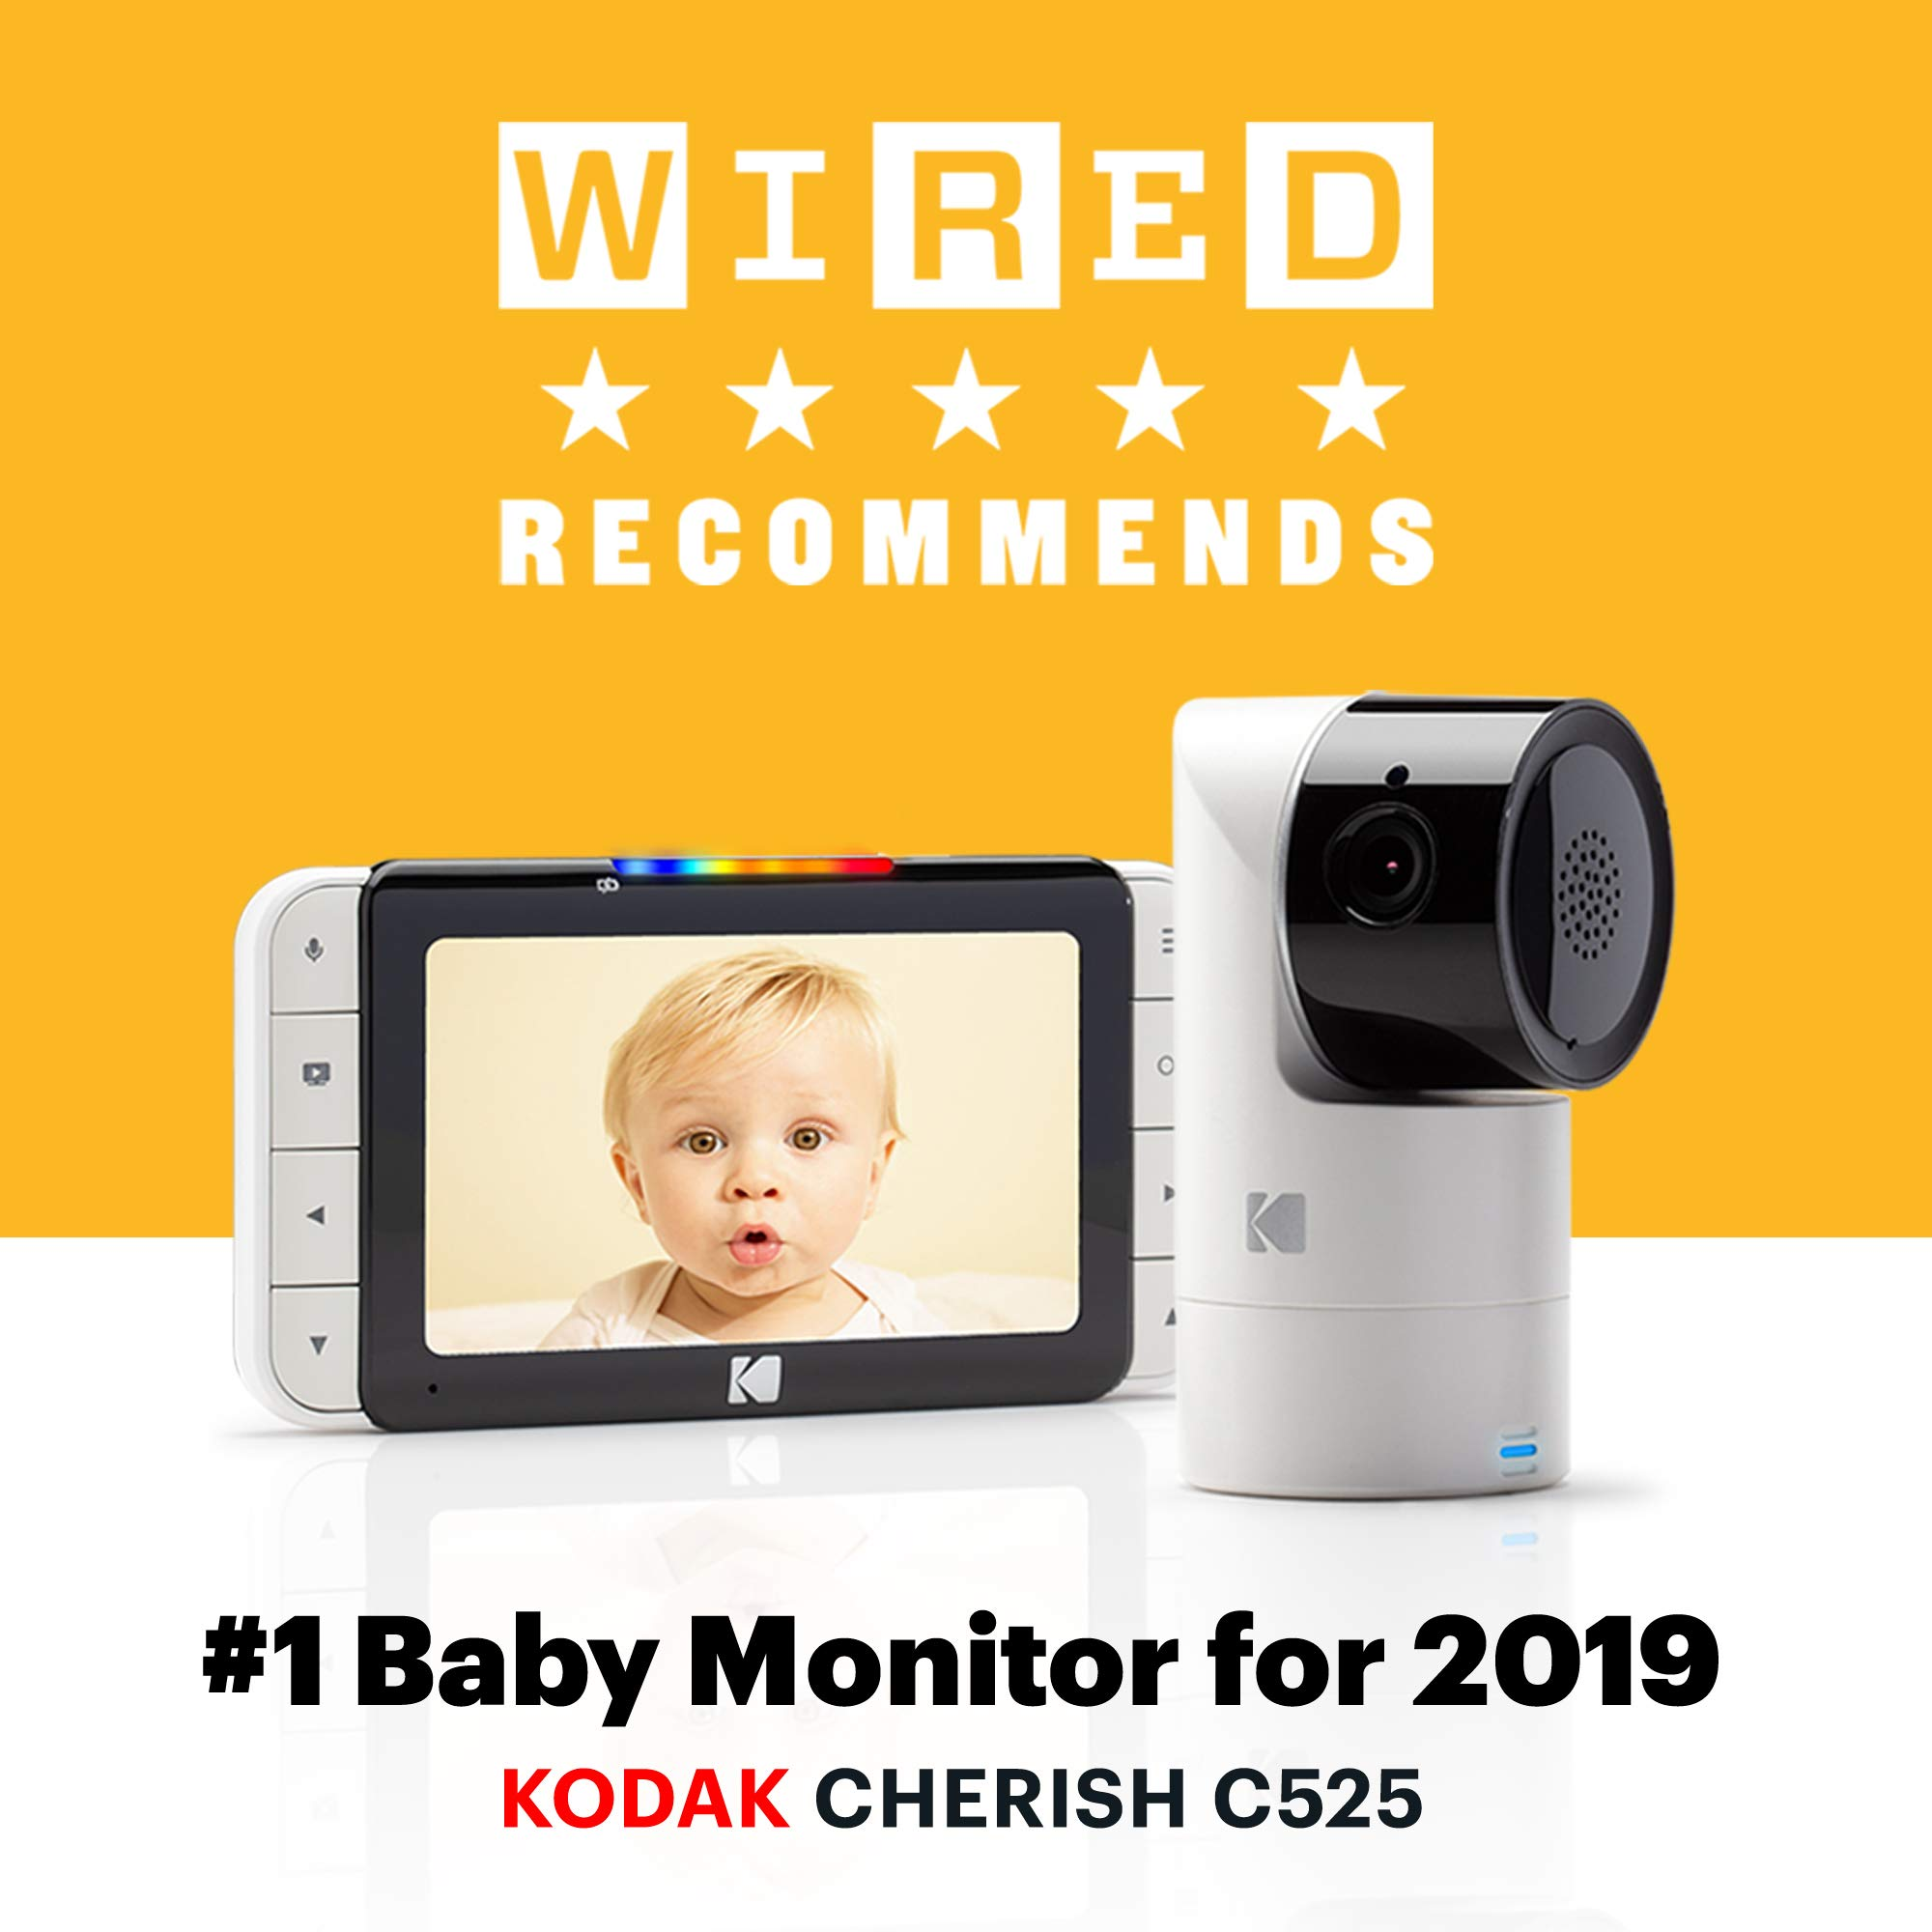 KODAK Cherish C525 Video Baby Monitor + C125 Additional Camera - with Mobile App - 5'' HD Screen - Hi-res Baby Camera with Remote Tilt, Pan and Zoom Two-Way Audio, Night-Vision, Long Range by Kodak (Image #2)